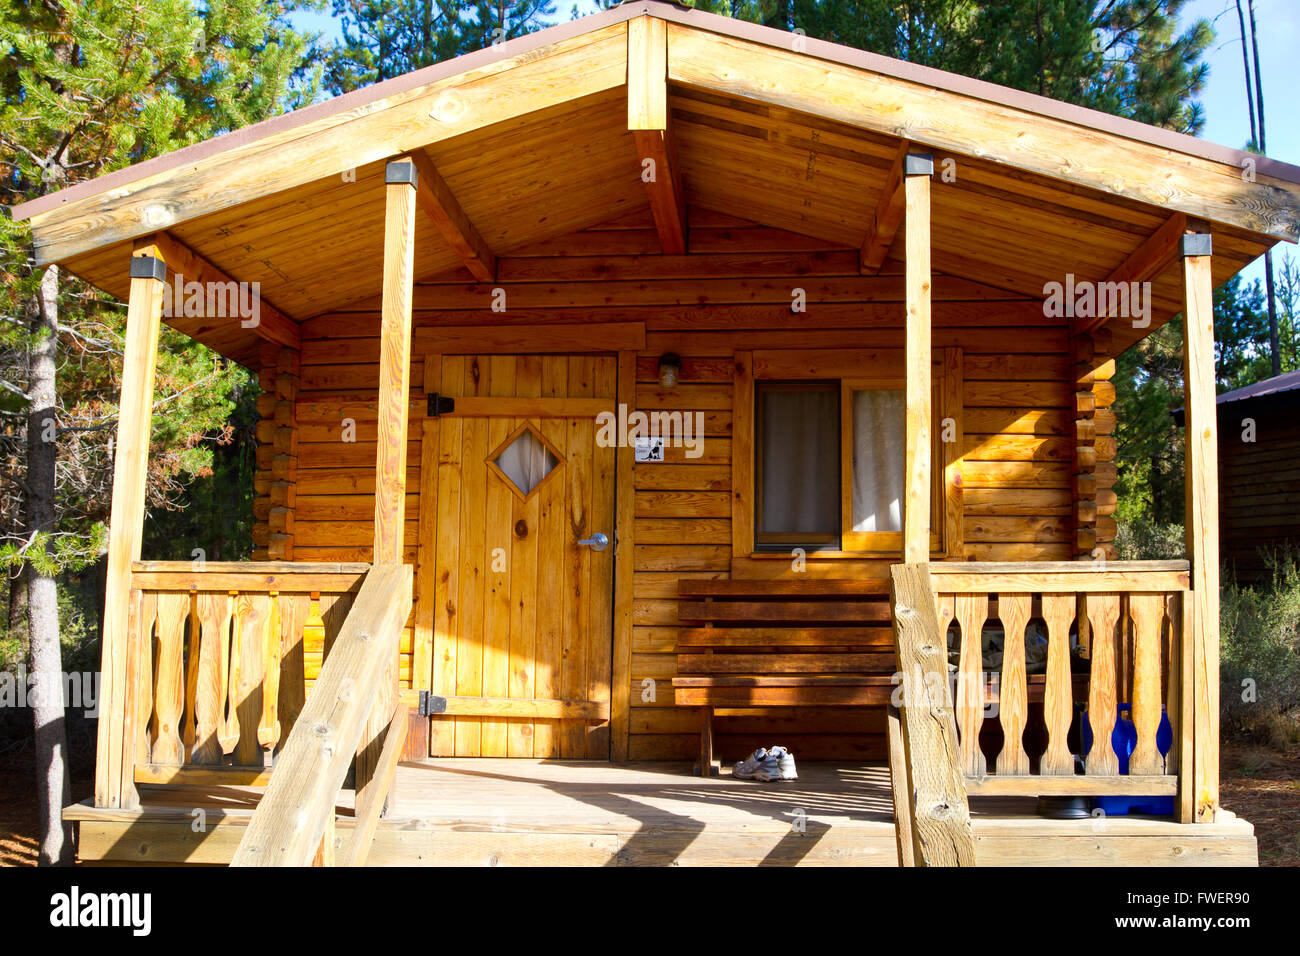 cabin camping in the woods. A Rustic Log Cabin Lodge Building In The Woods At An Outdoors Camping Park Facility.